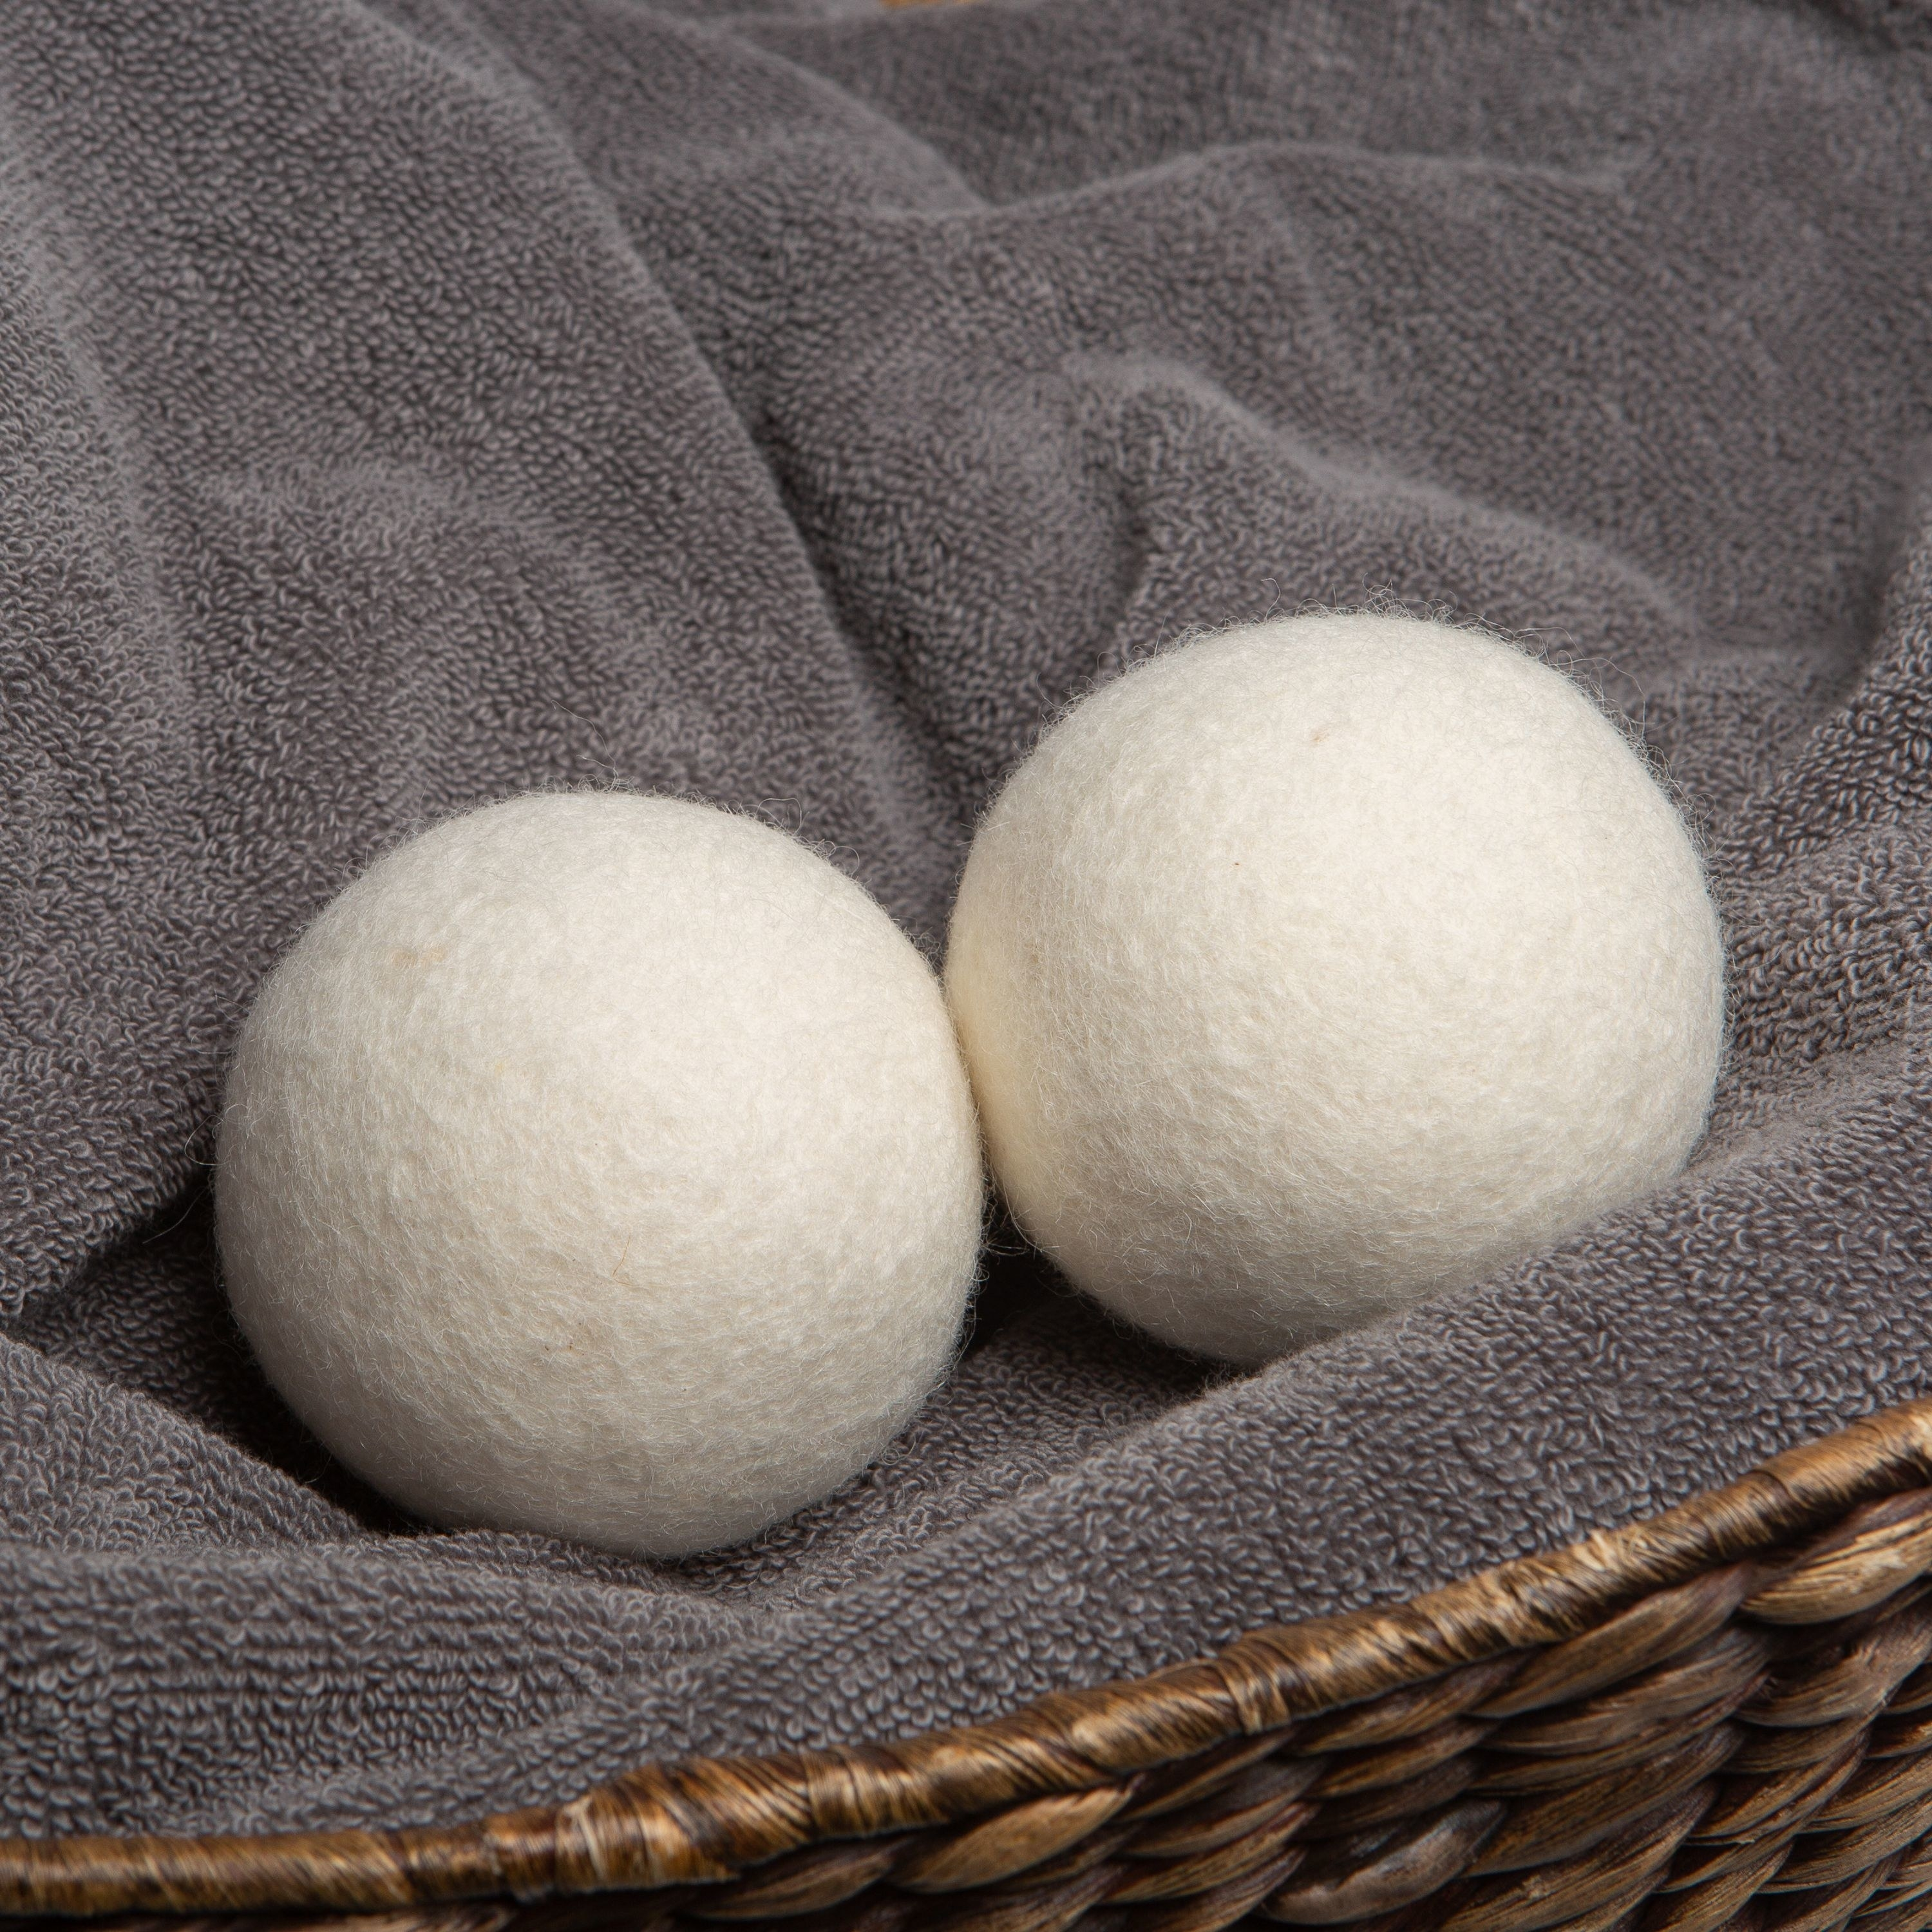 two wool dryer balls sitting in a laundry basket with a towel